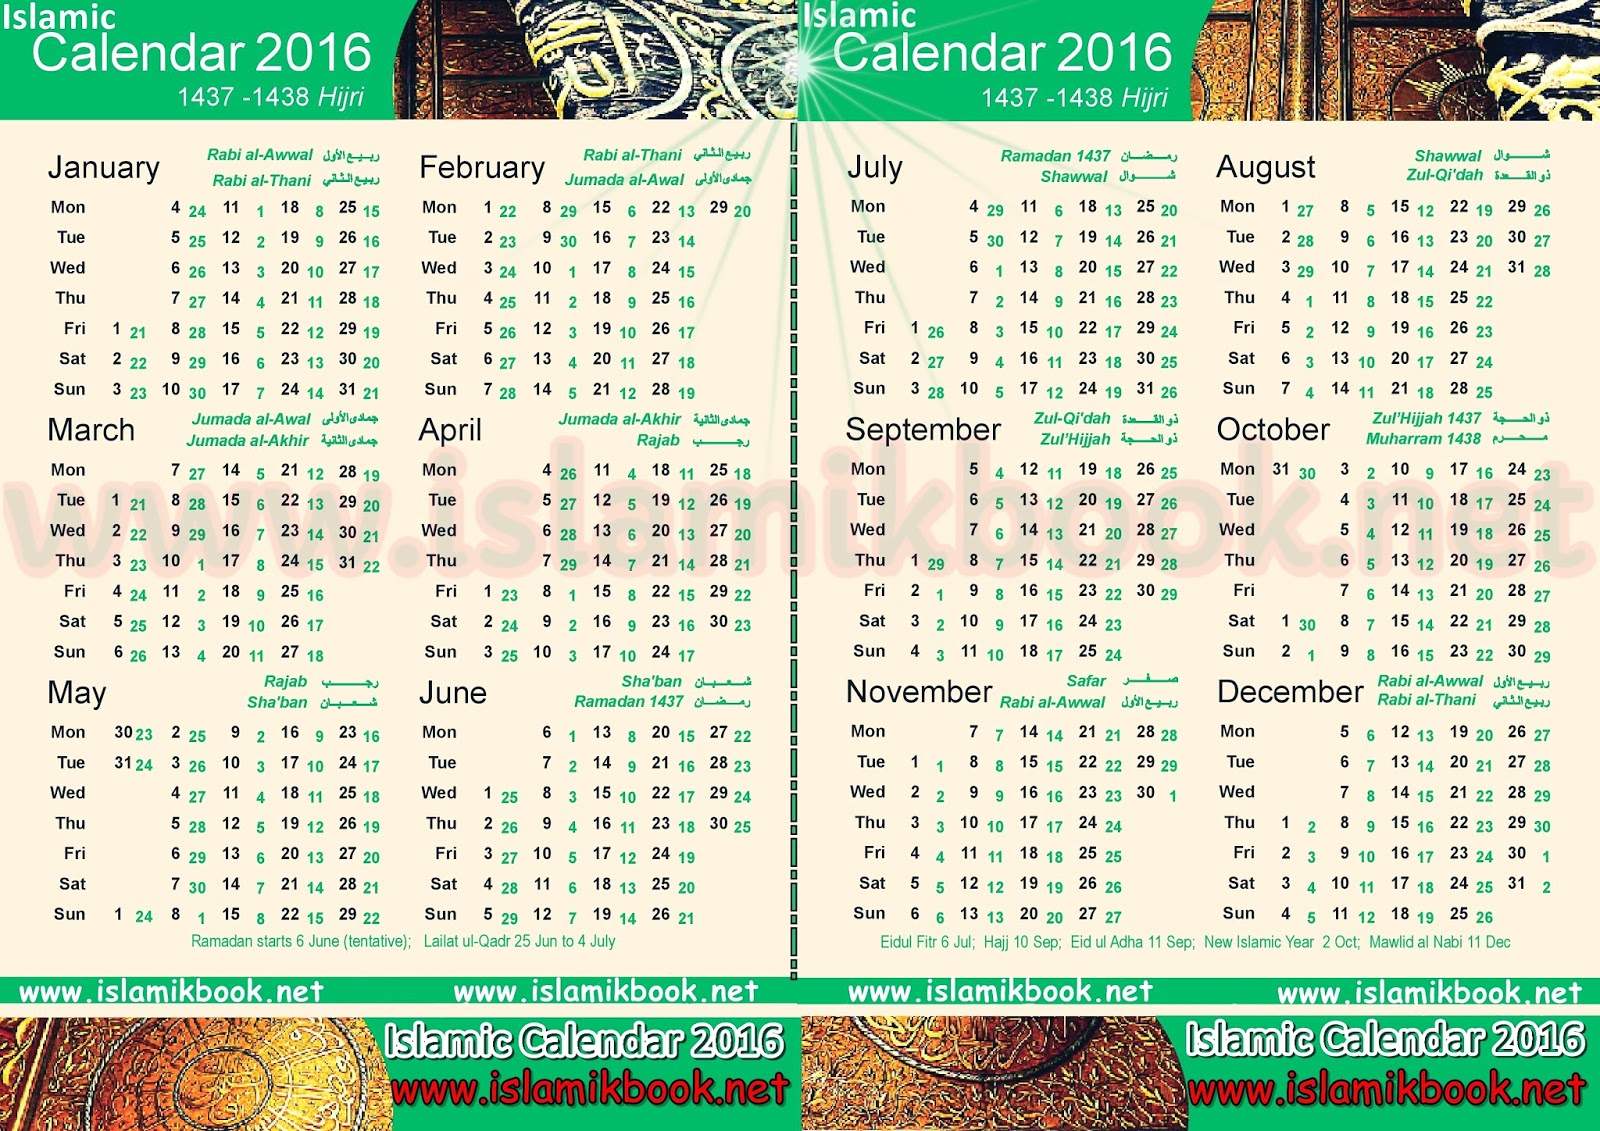 Download Printable Islamic Calendar 2018 1439/ Hijri